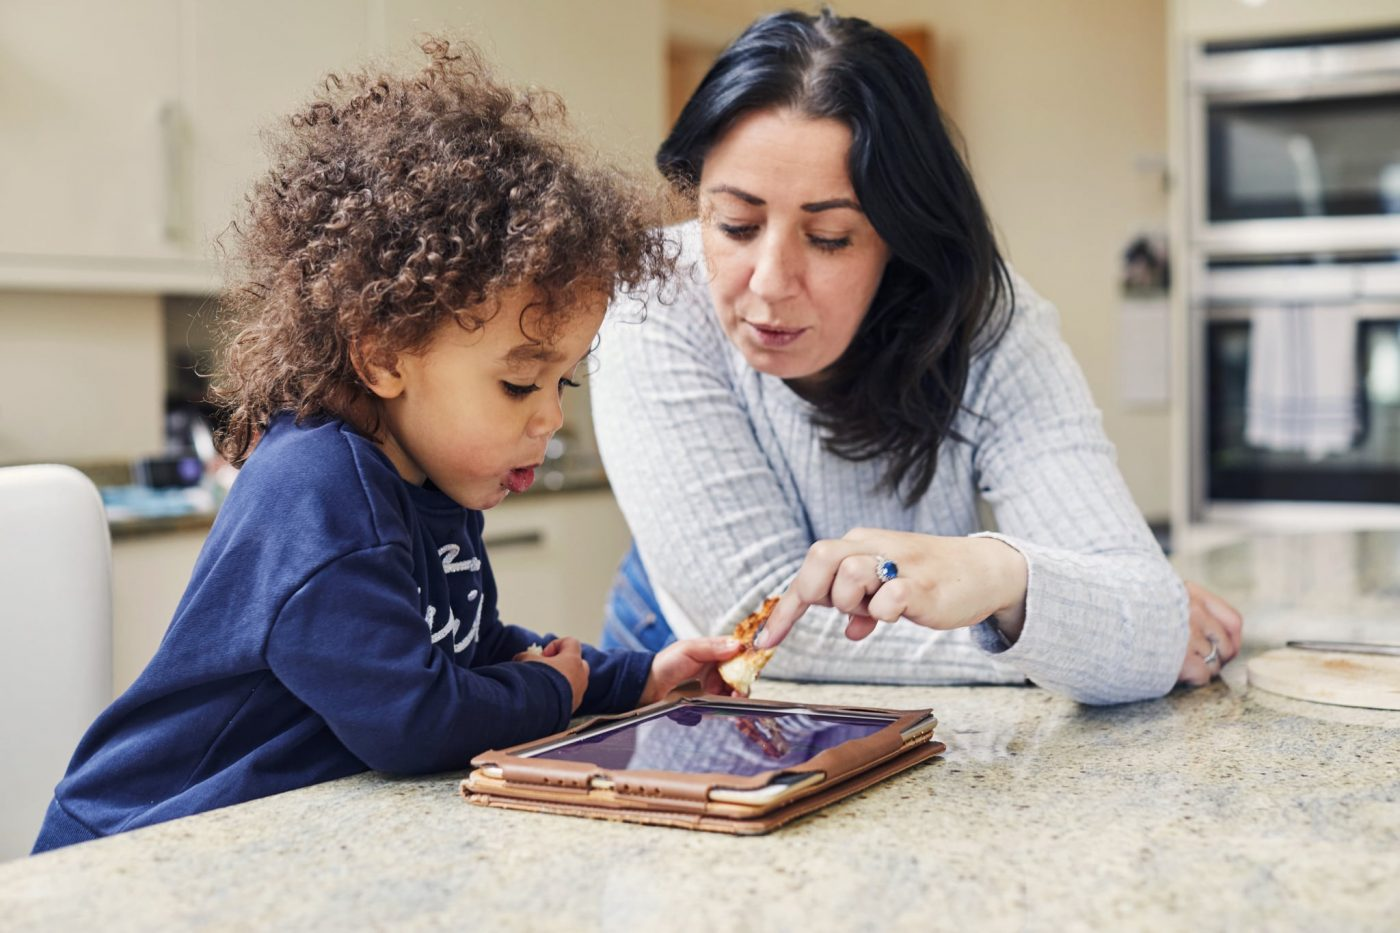 A Psychologist and a Special-Needs Teacher's Tips to Help Kids With Disabilities Learn at Home